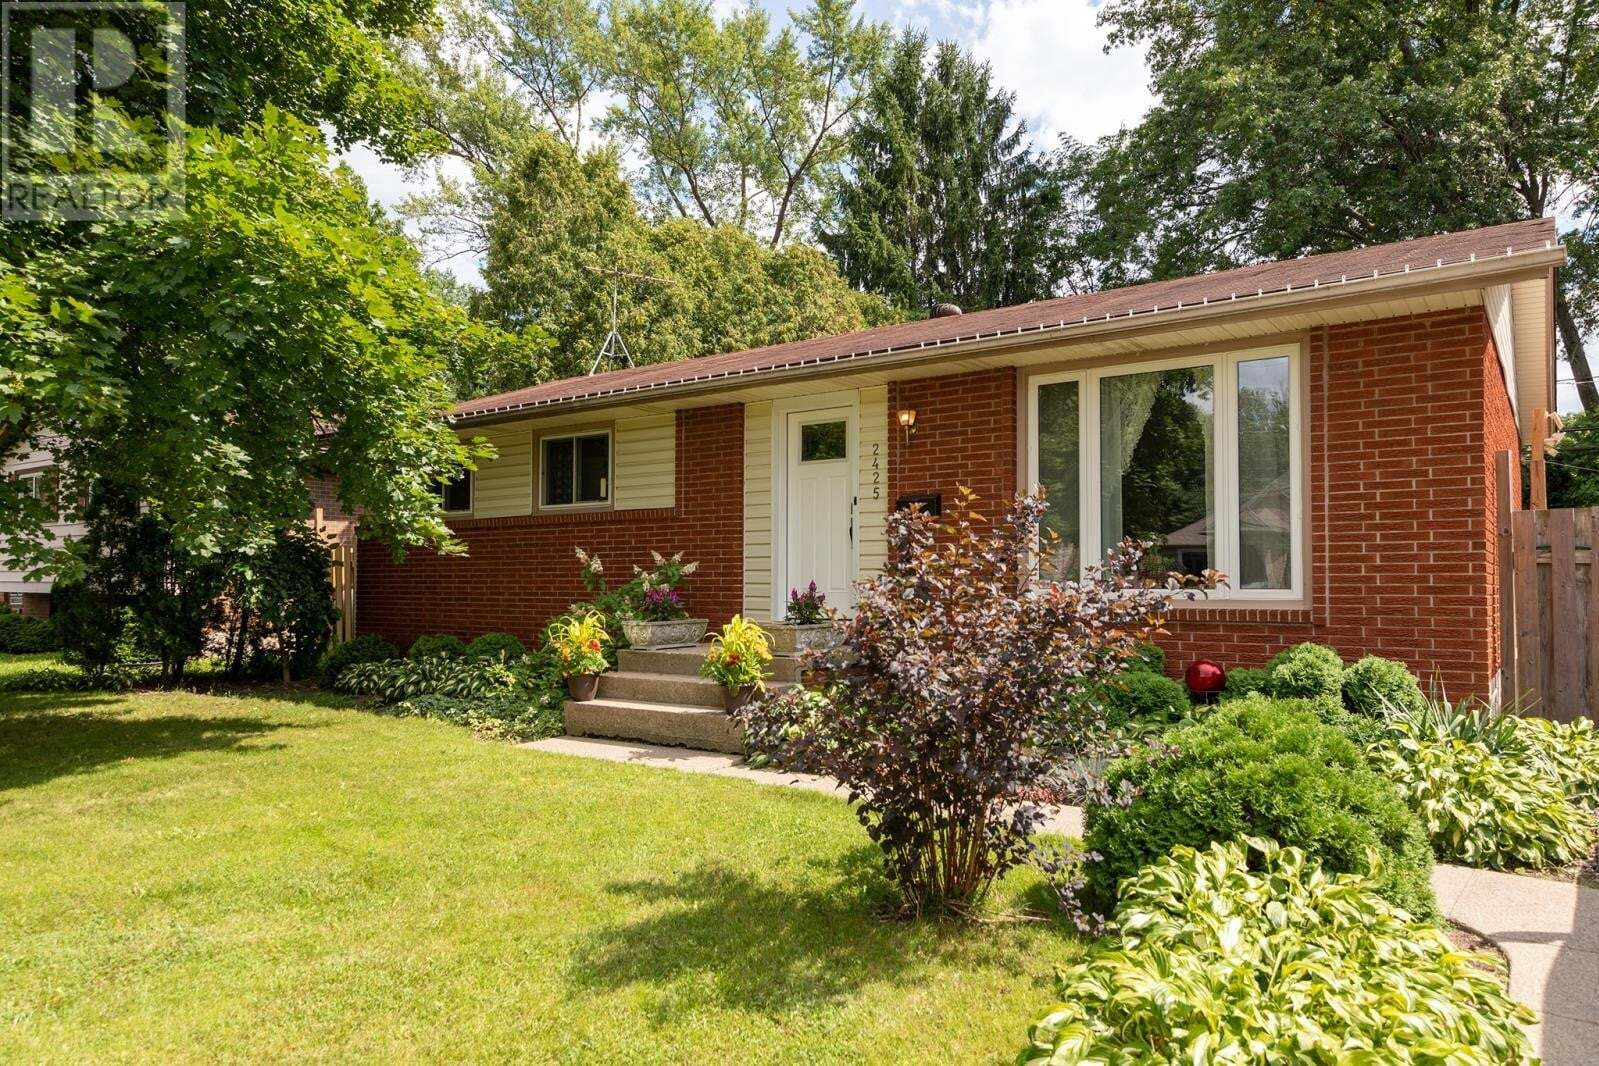 House for sale at 2425 Todd Ln Lasalle Ontario - MLS: 20009541